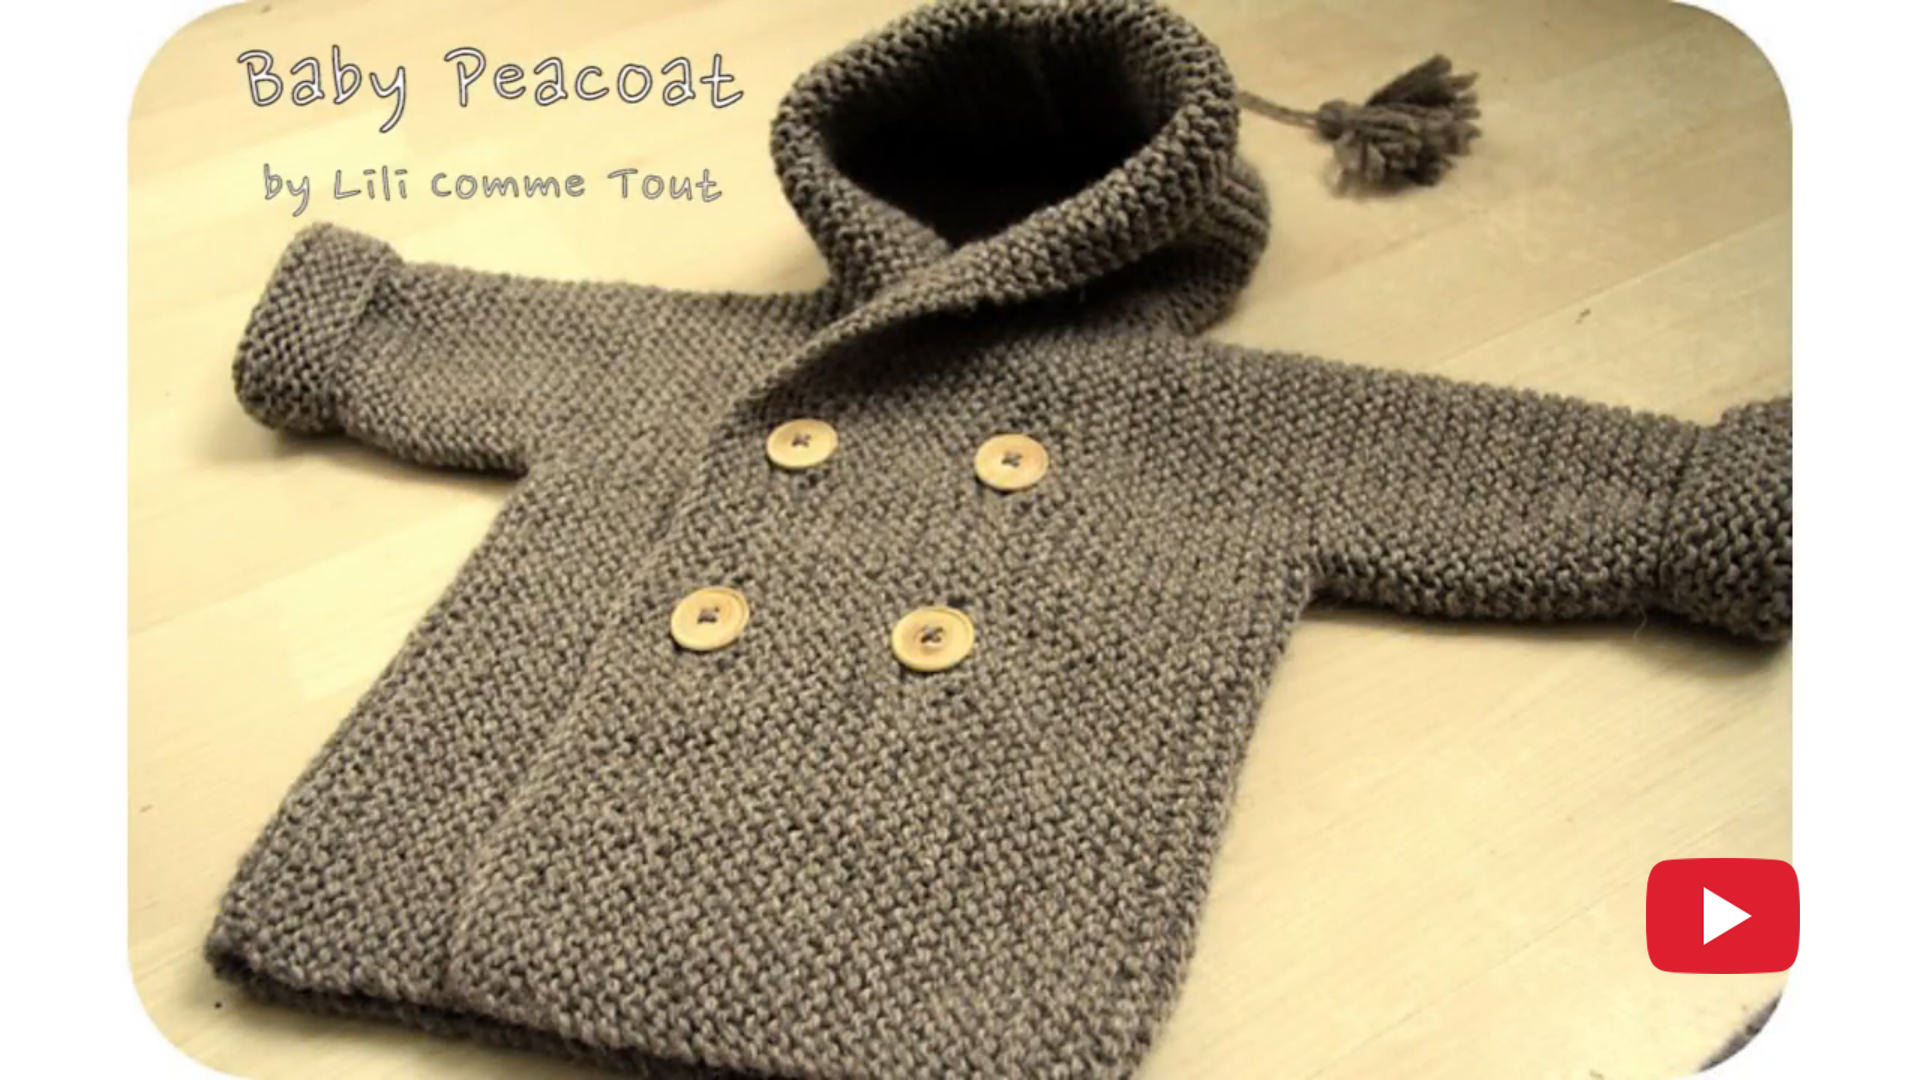 Baby Peacoat Knit Pattern Tutorial